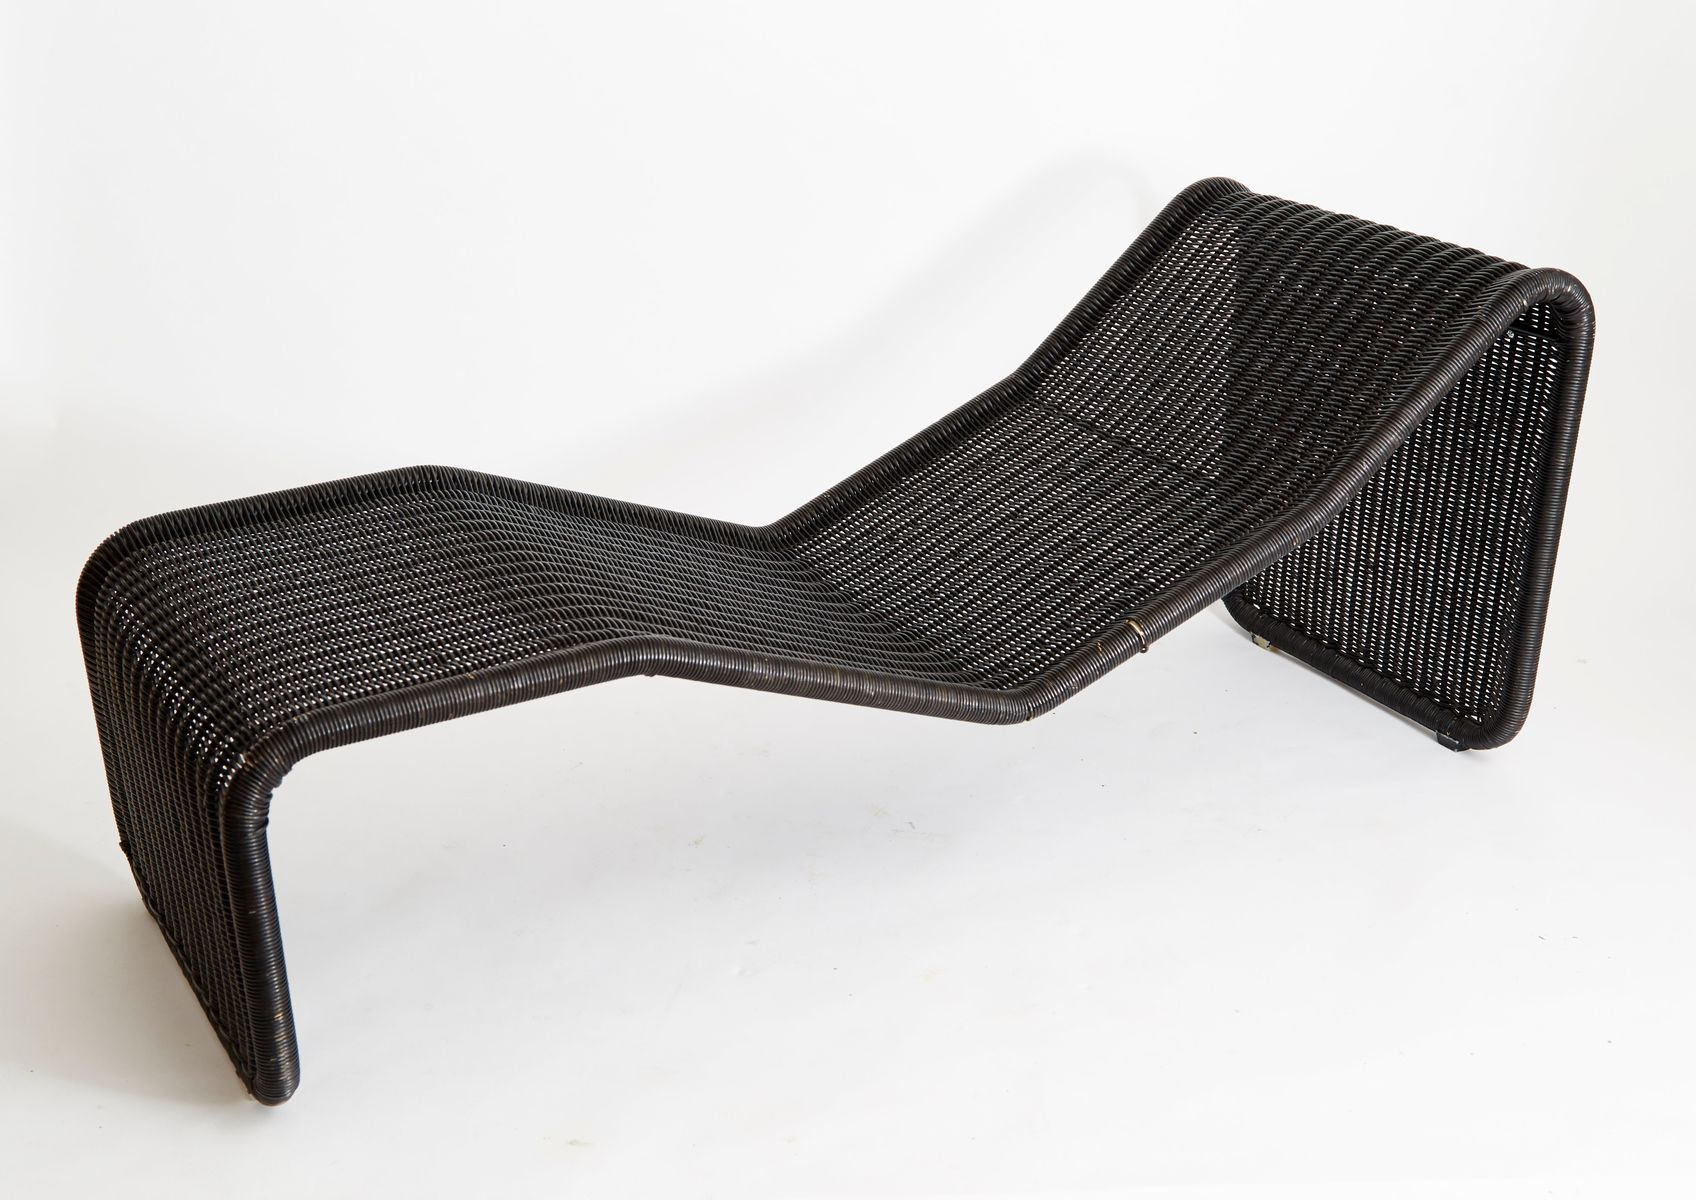 S Reclining Deckchair by Tito Agnoli for Pierantonio Bonacina & Vintage P3.S Reclining Deckchair by Tito Agnoli for Pierantonio ... islam-shia.org